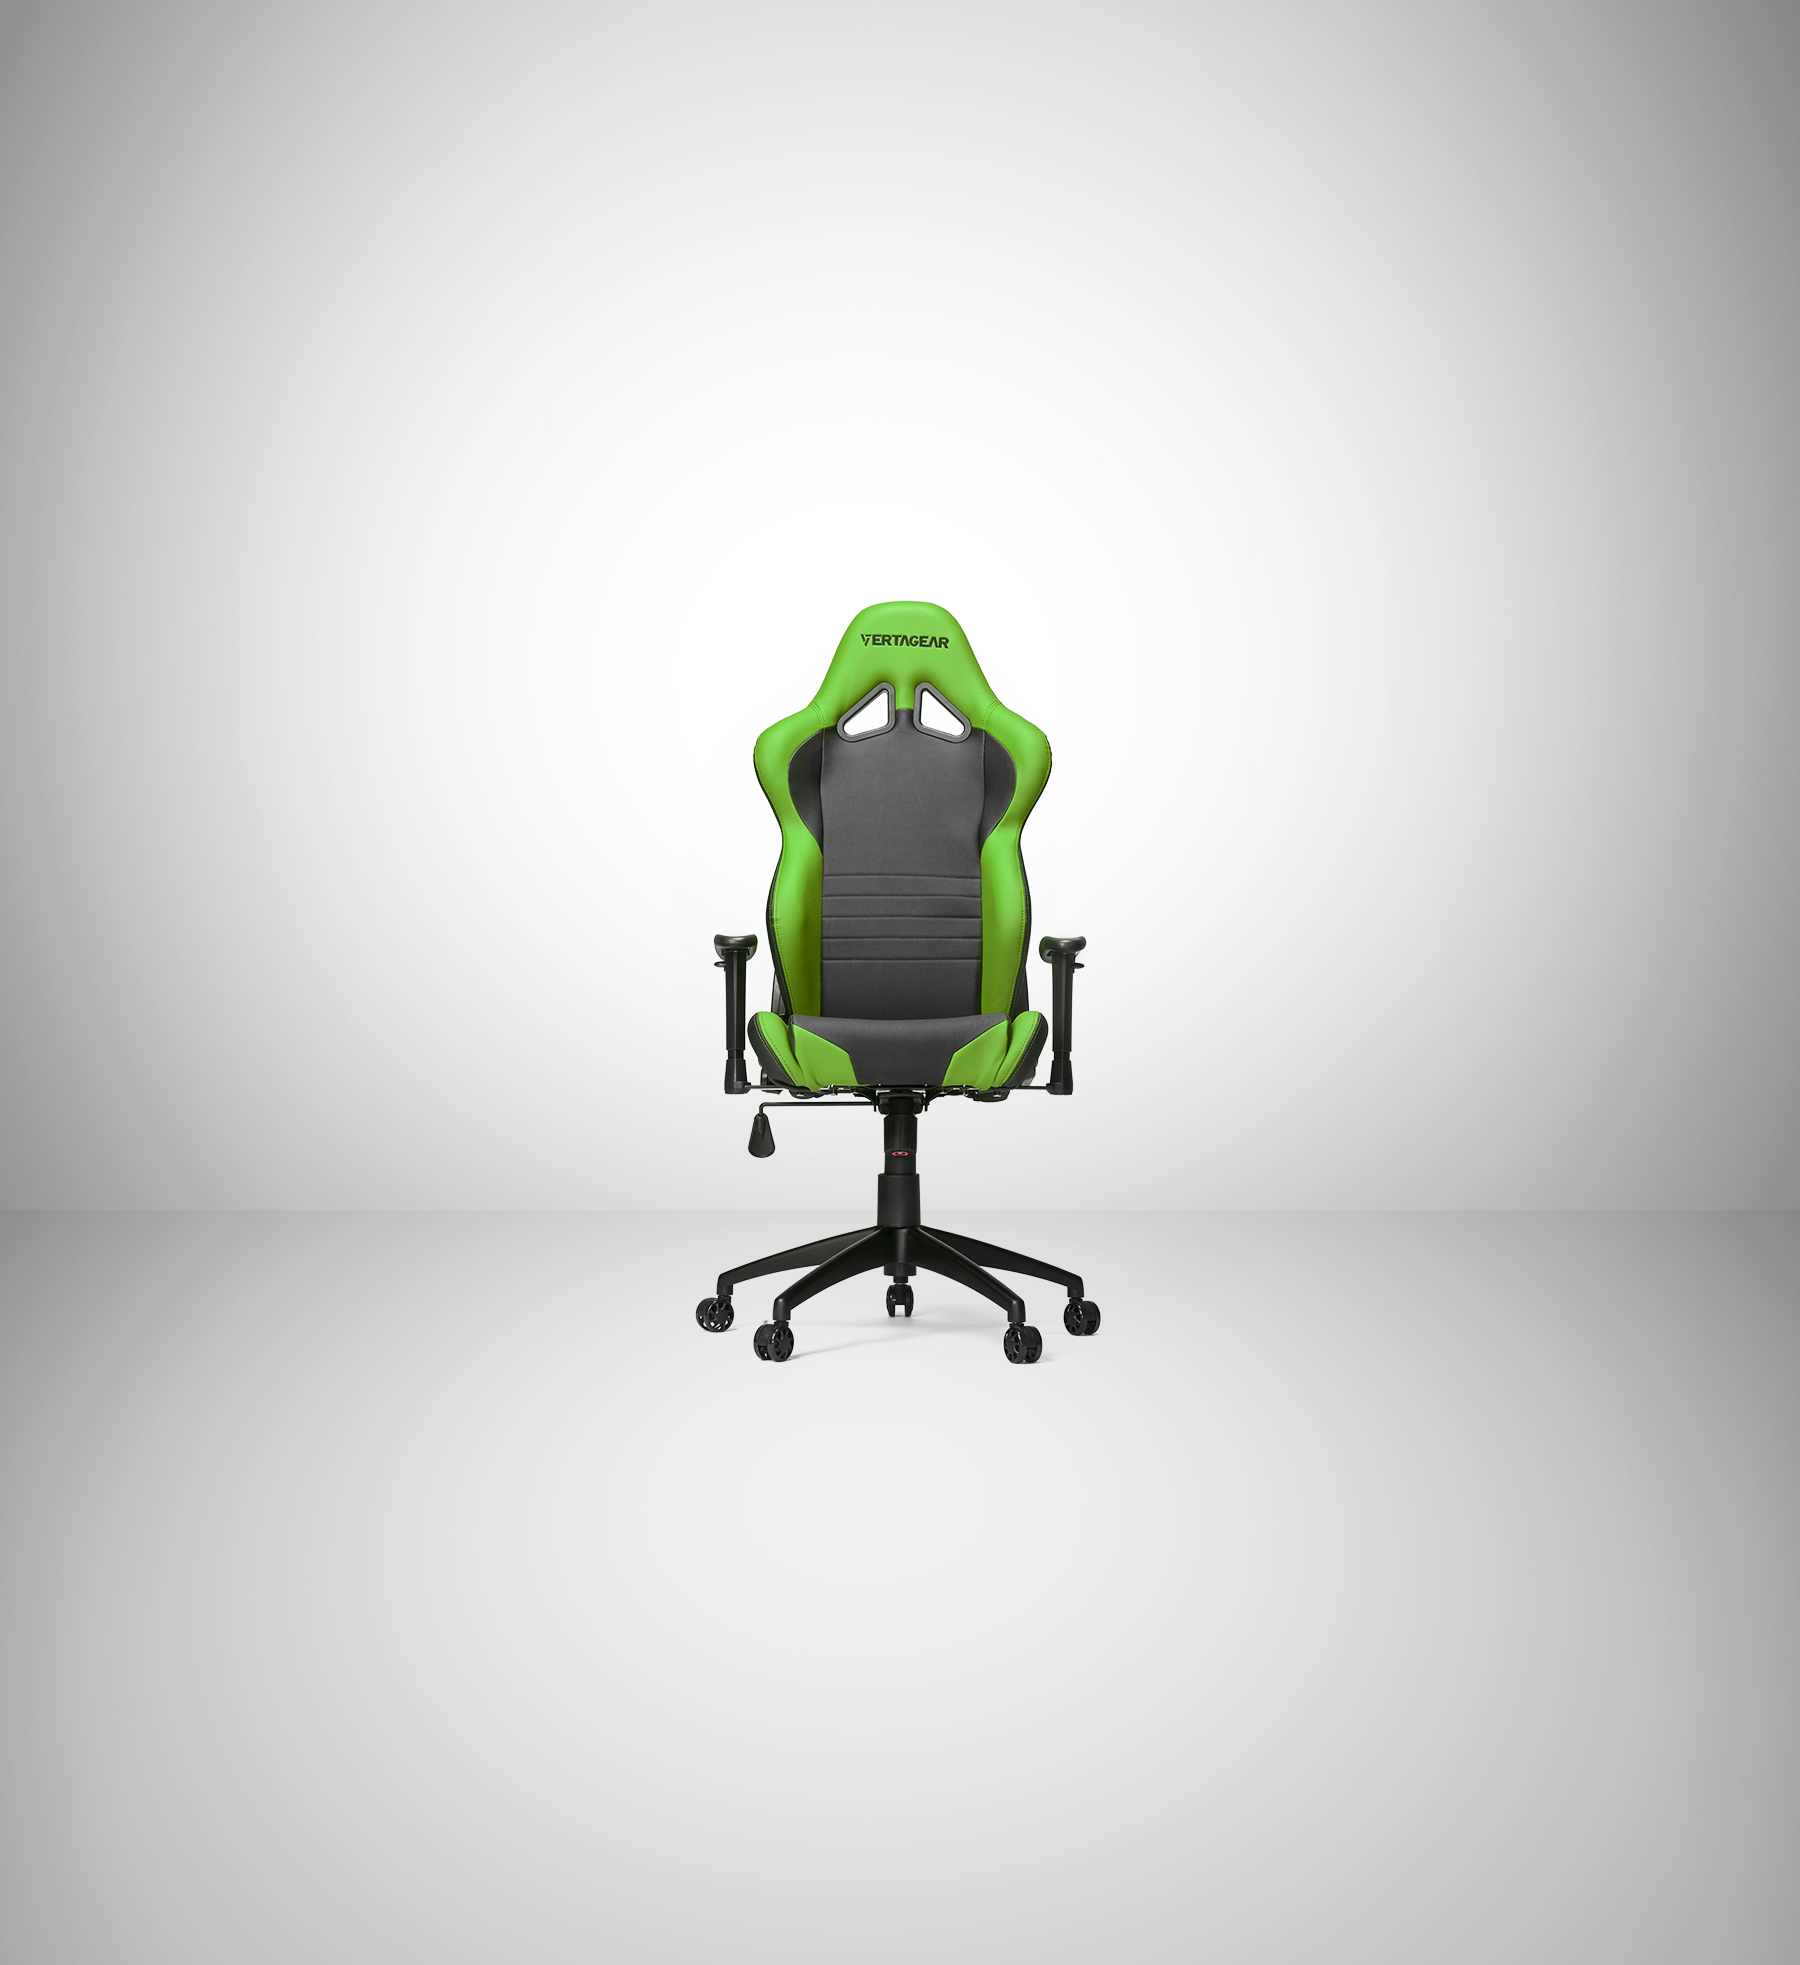 Vertagear SL2000 Padded seat Padded backrest office/computer chair